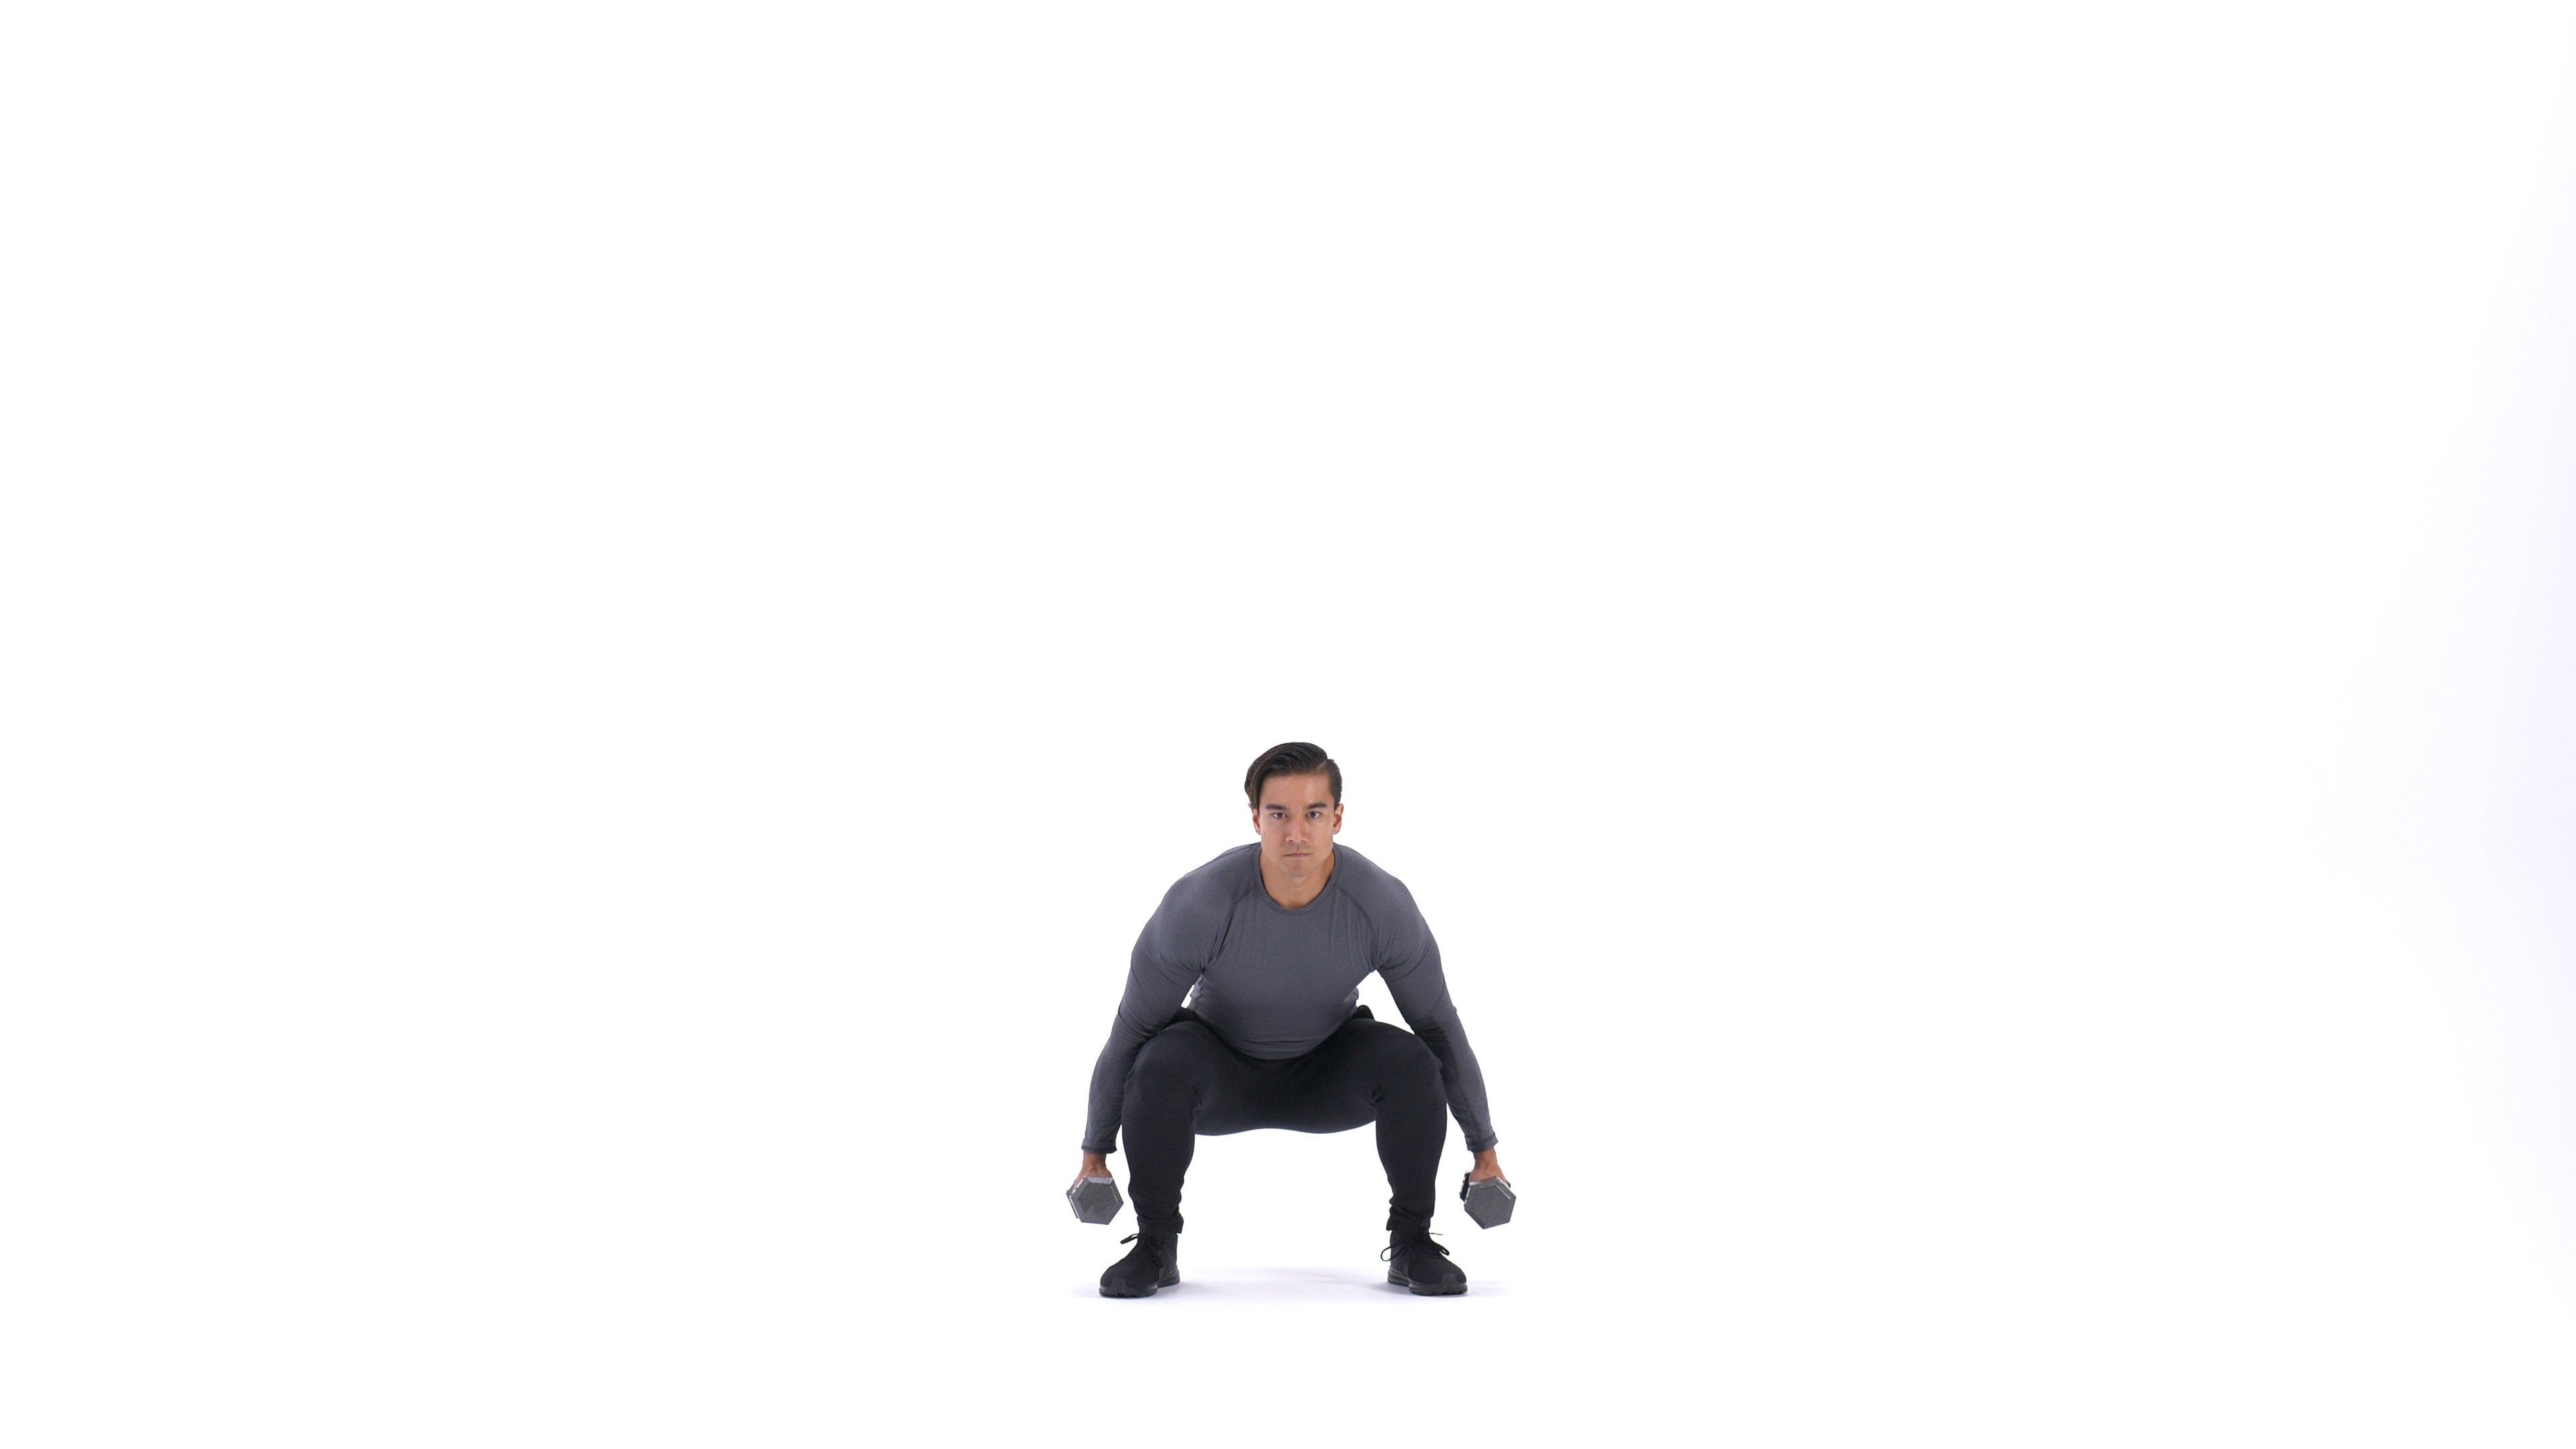 Dumbbell jump squat image